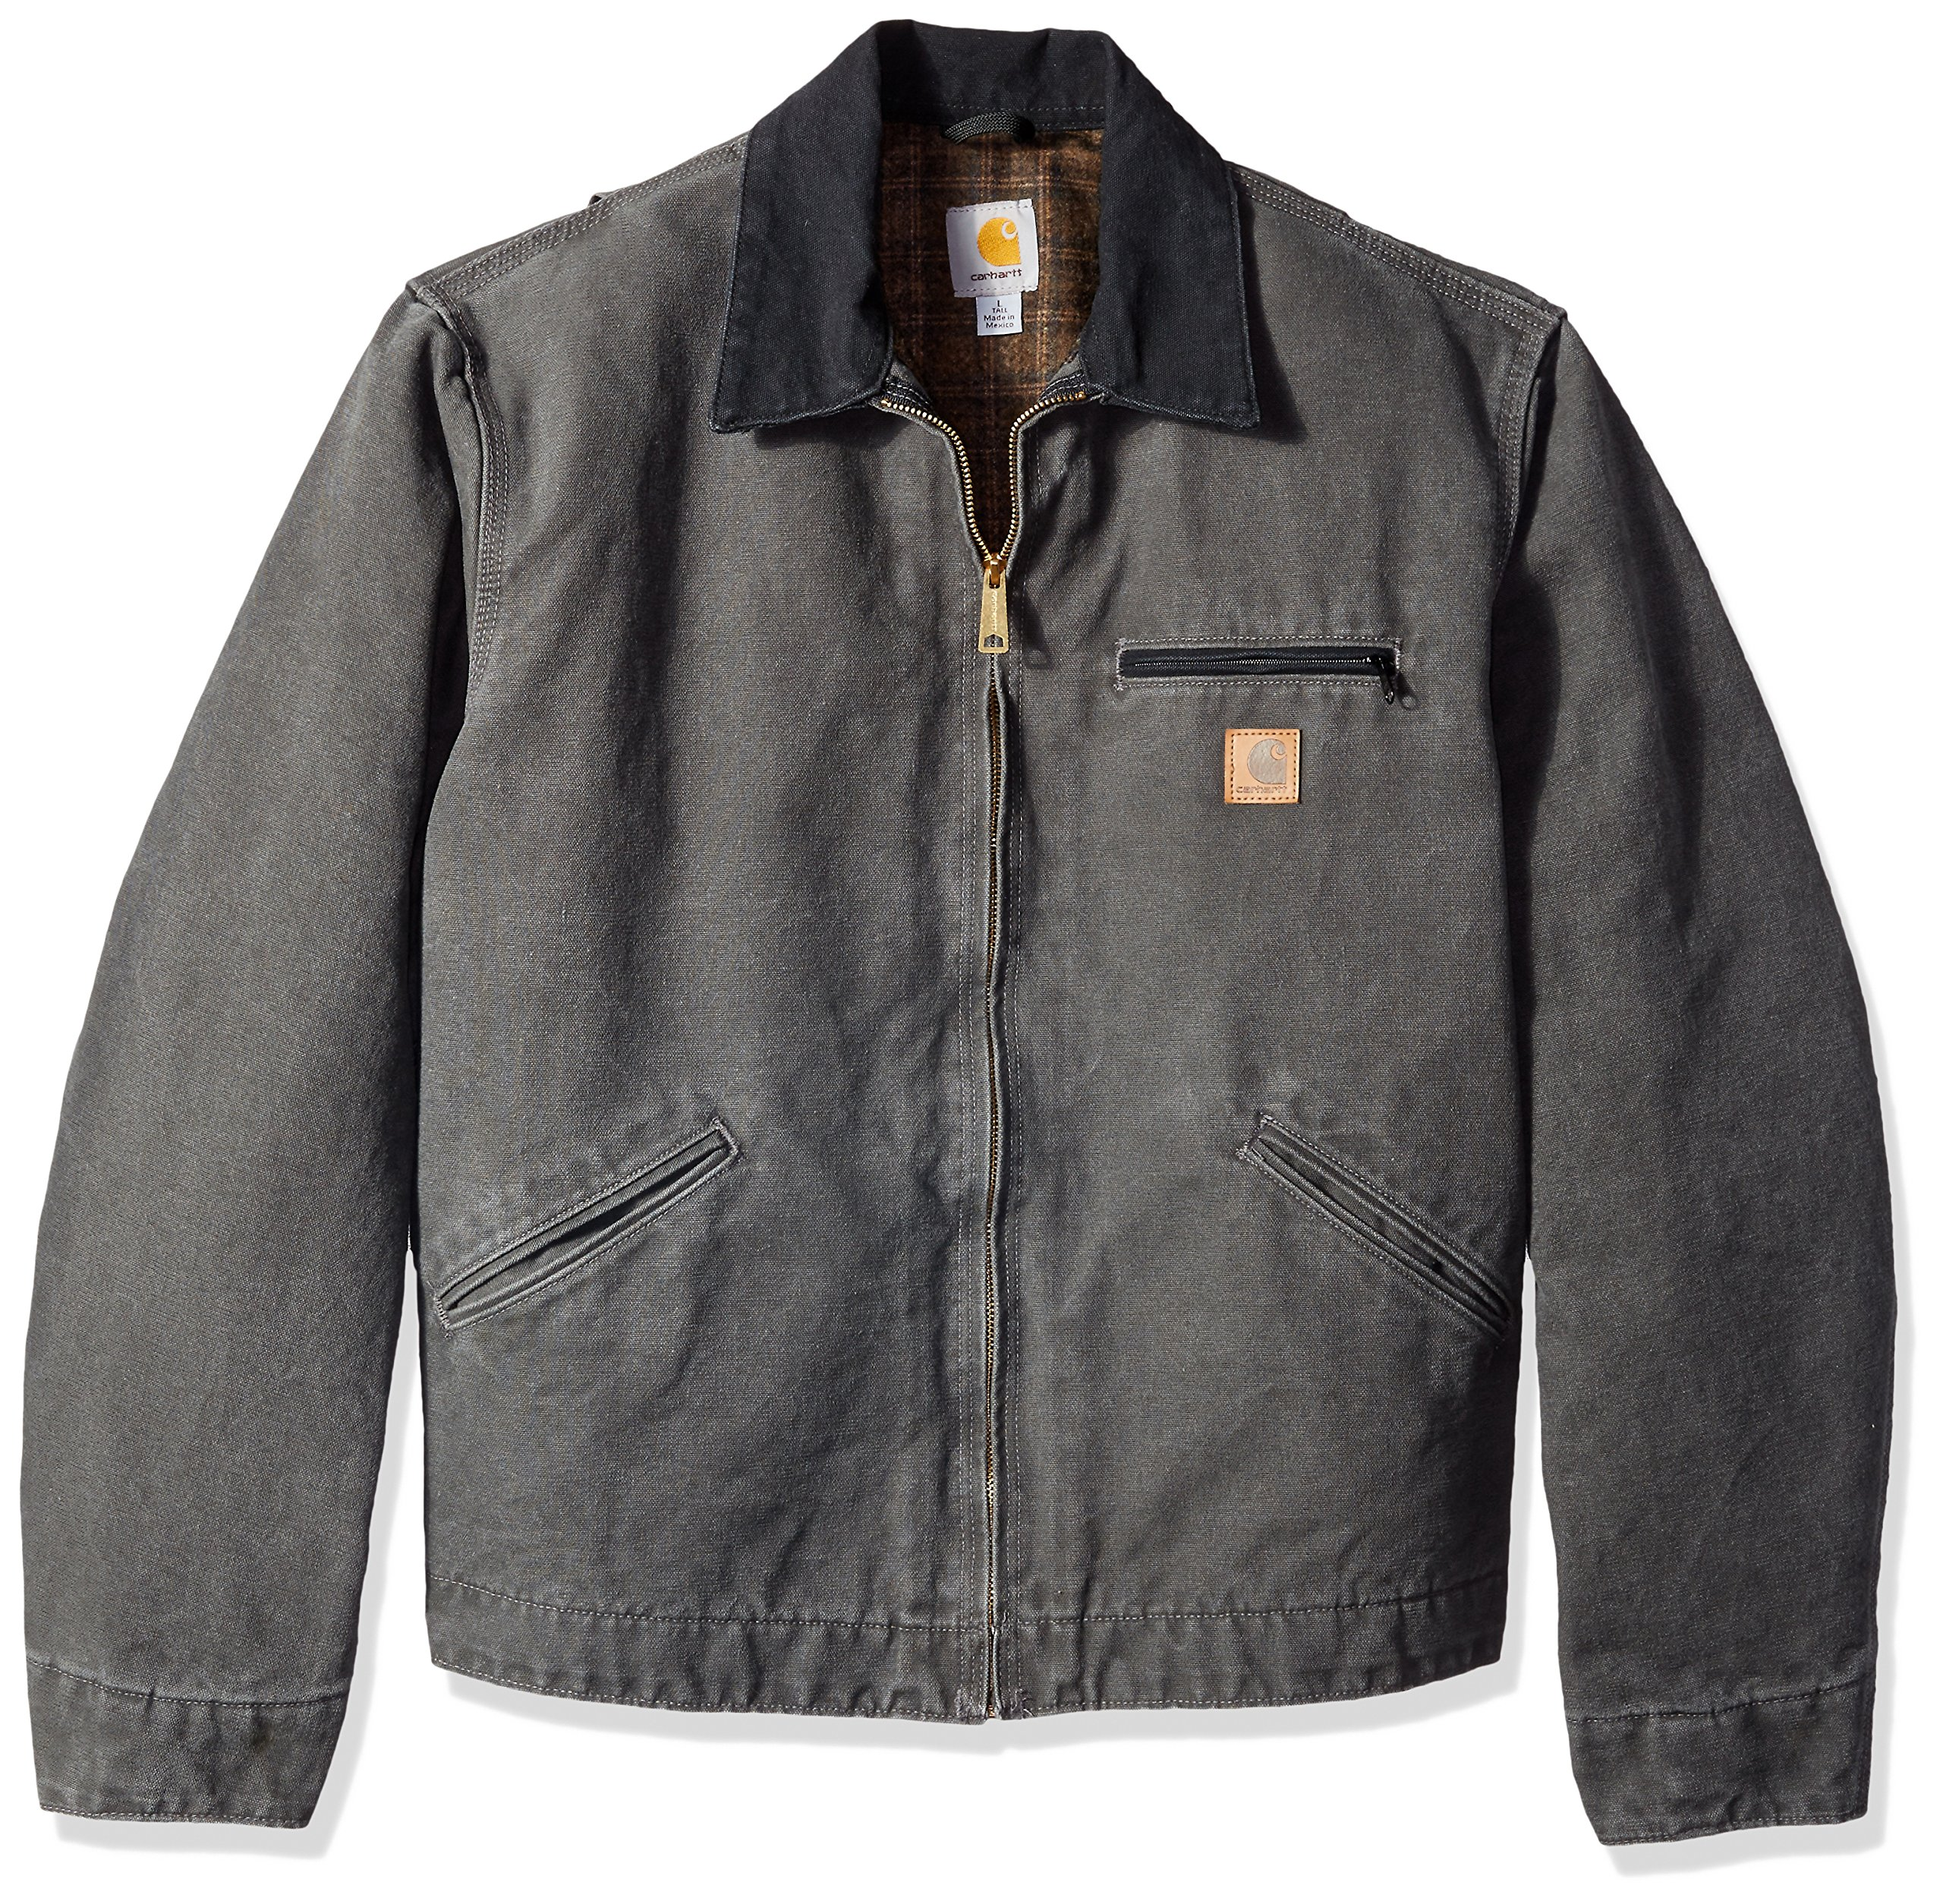 Carhartt Men's Blanket Lined Sandstone Detroit Jacket J97,Gravel,X-Large by Carhartt